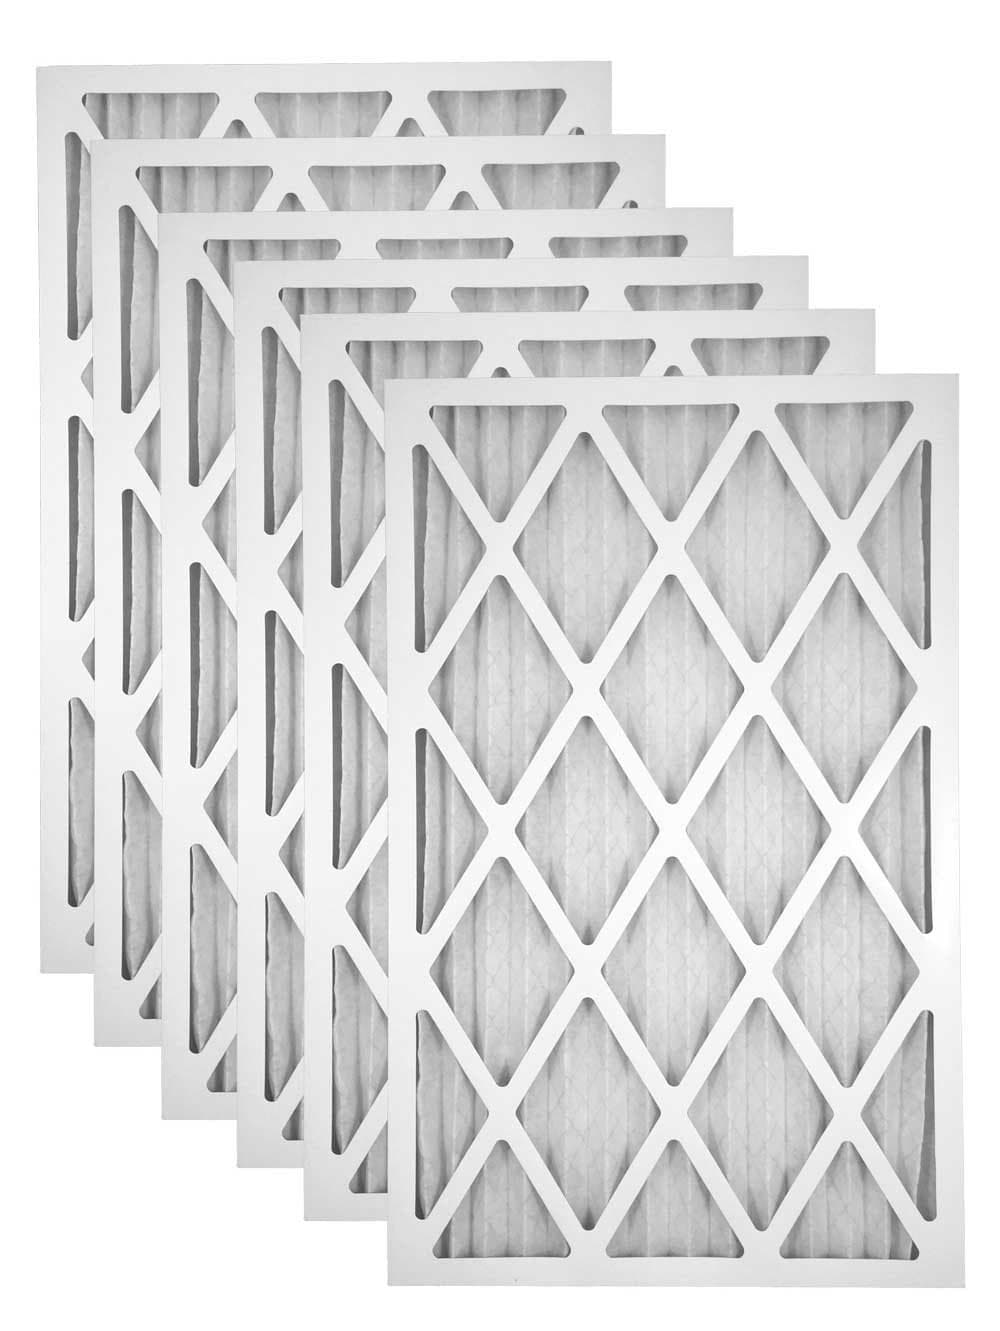 14x20x1 Merv 11 AC Furnace Filter - Case of 6